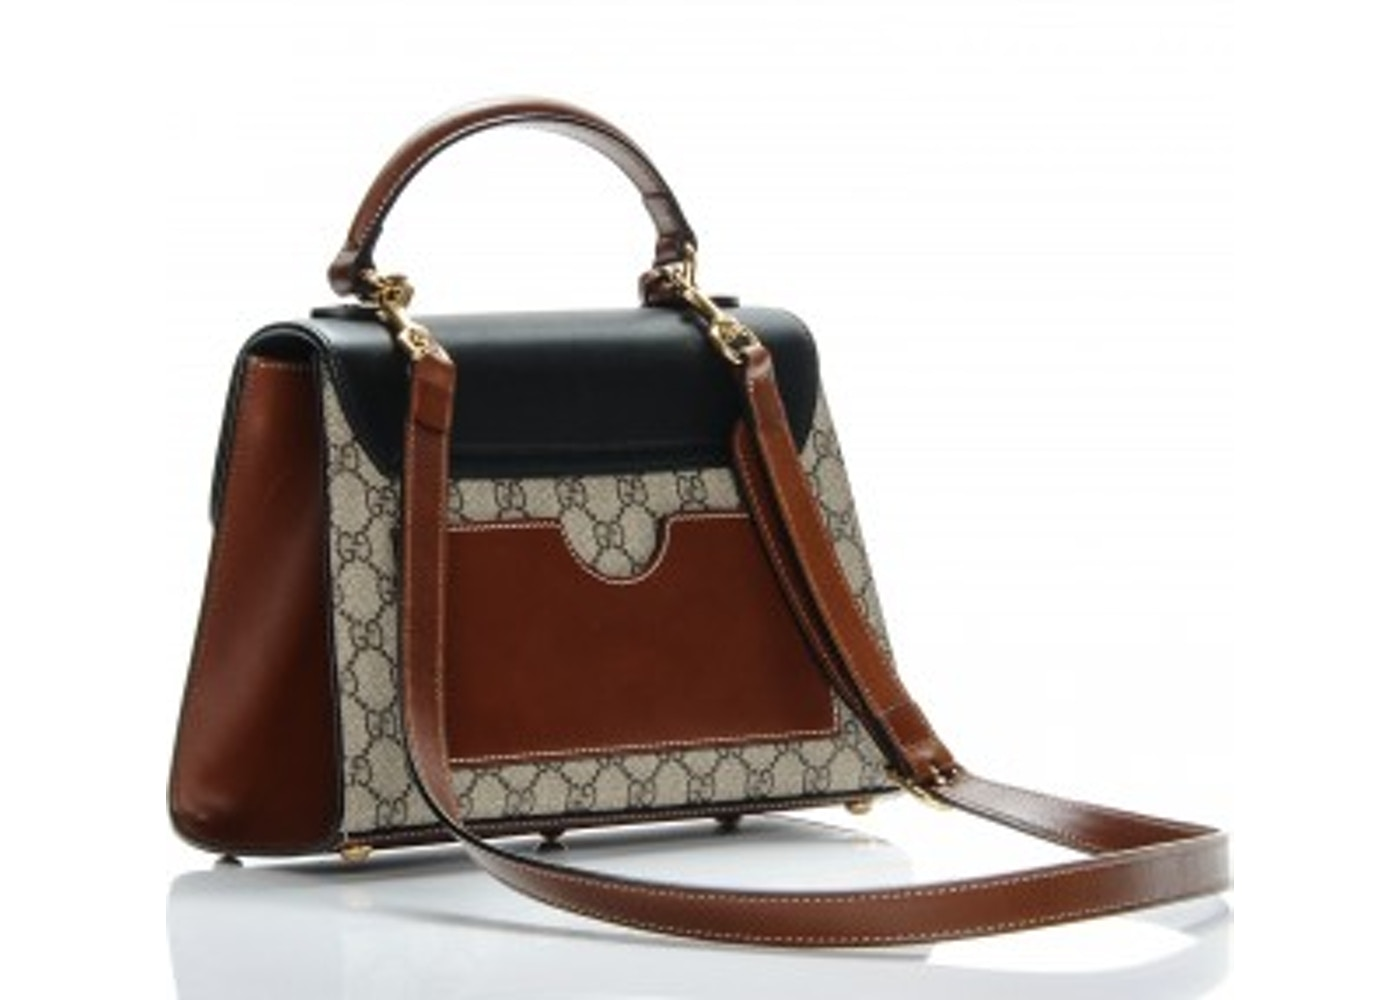 acbcf2650 Gucci Padlock Top Handle GG Supreme Monogram Small